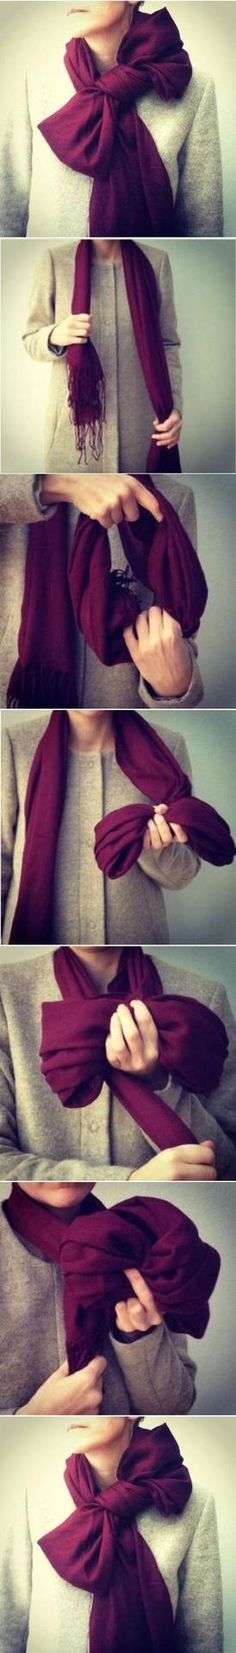 DIY Scarf Bow Making a scarf bow is great and you can really make this by. Look Fashion, Diy Fashion, Fashion Beauty, Autumn Fashion, Womens Fashion, Fashion Tips, Bow Scarf, Scarf Knots, Cooler Style